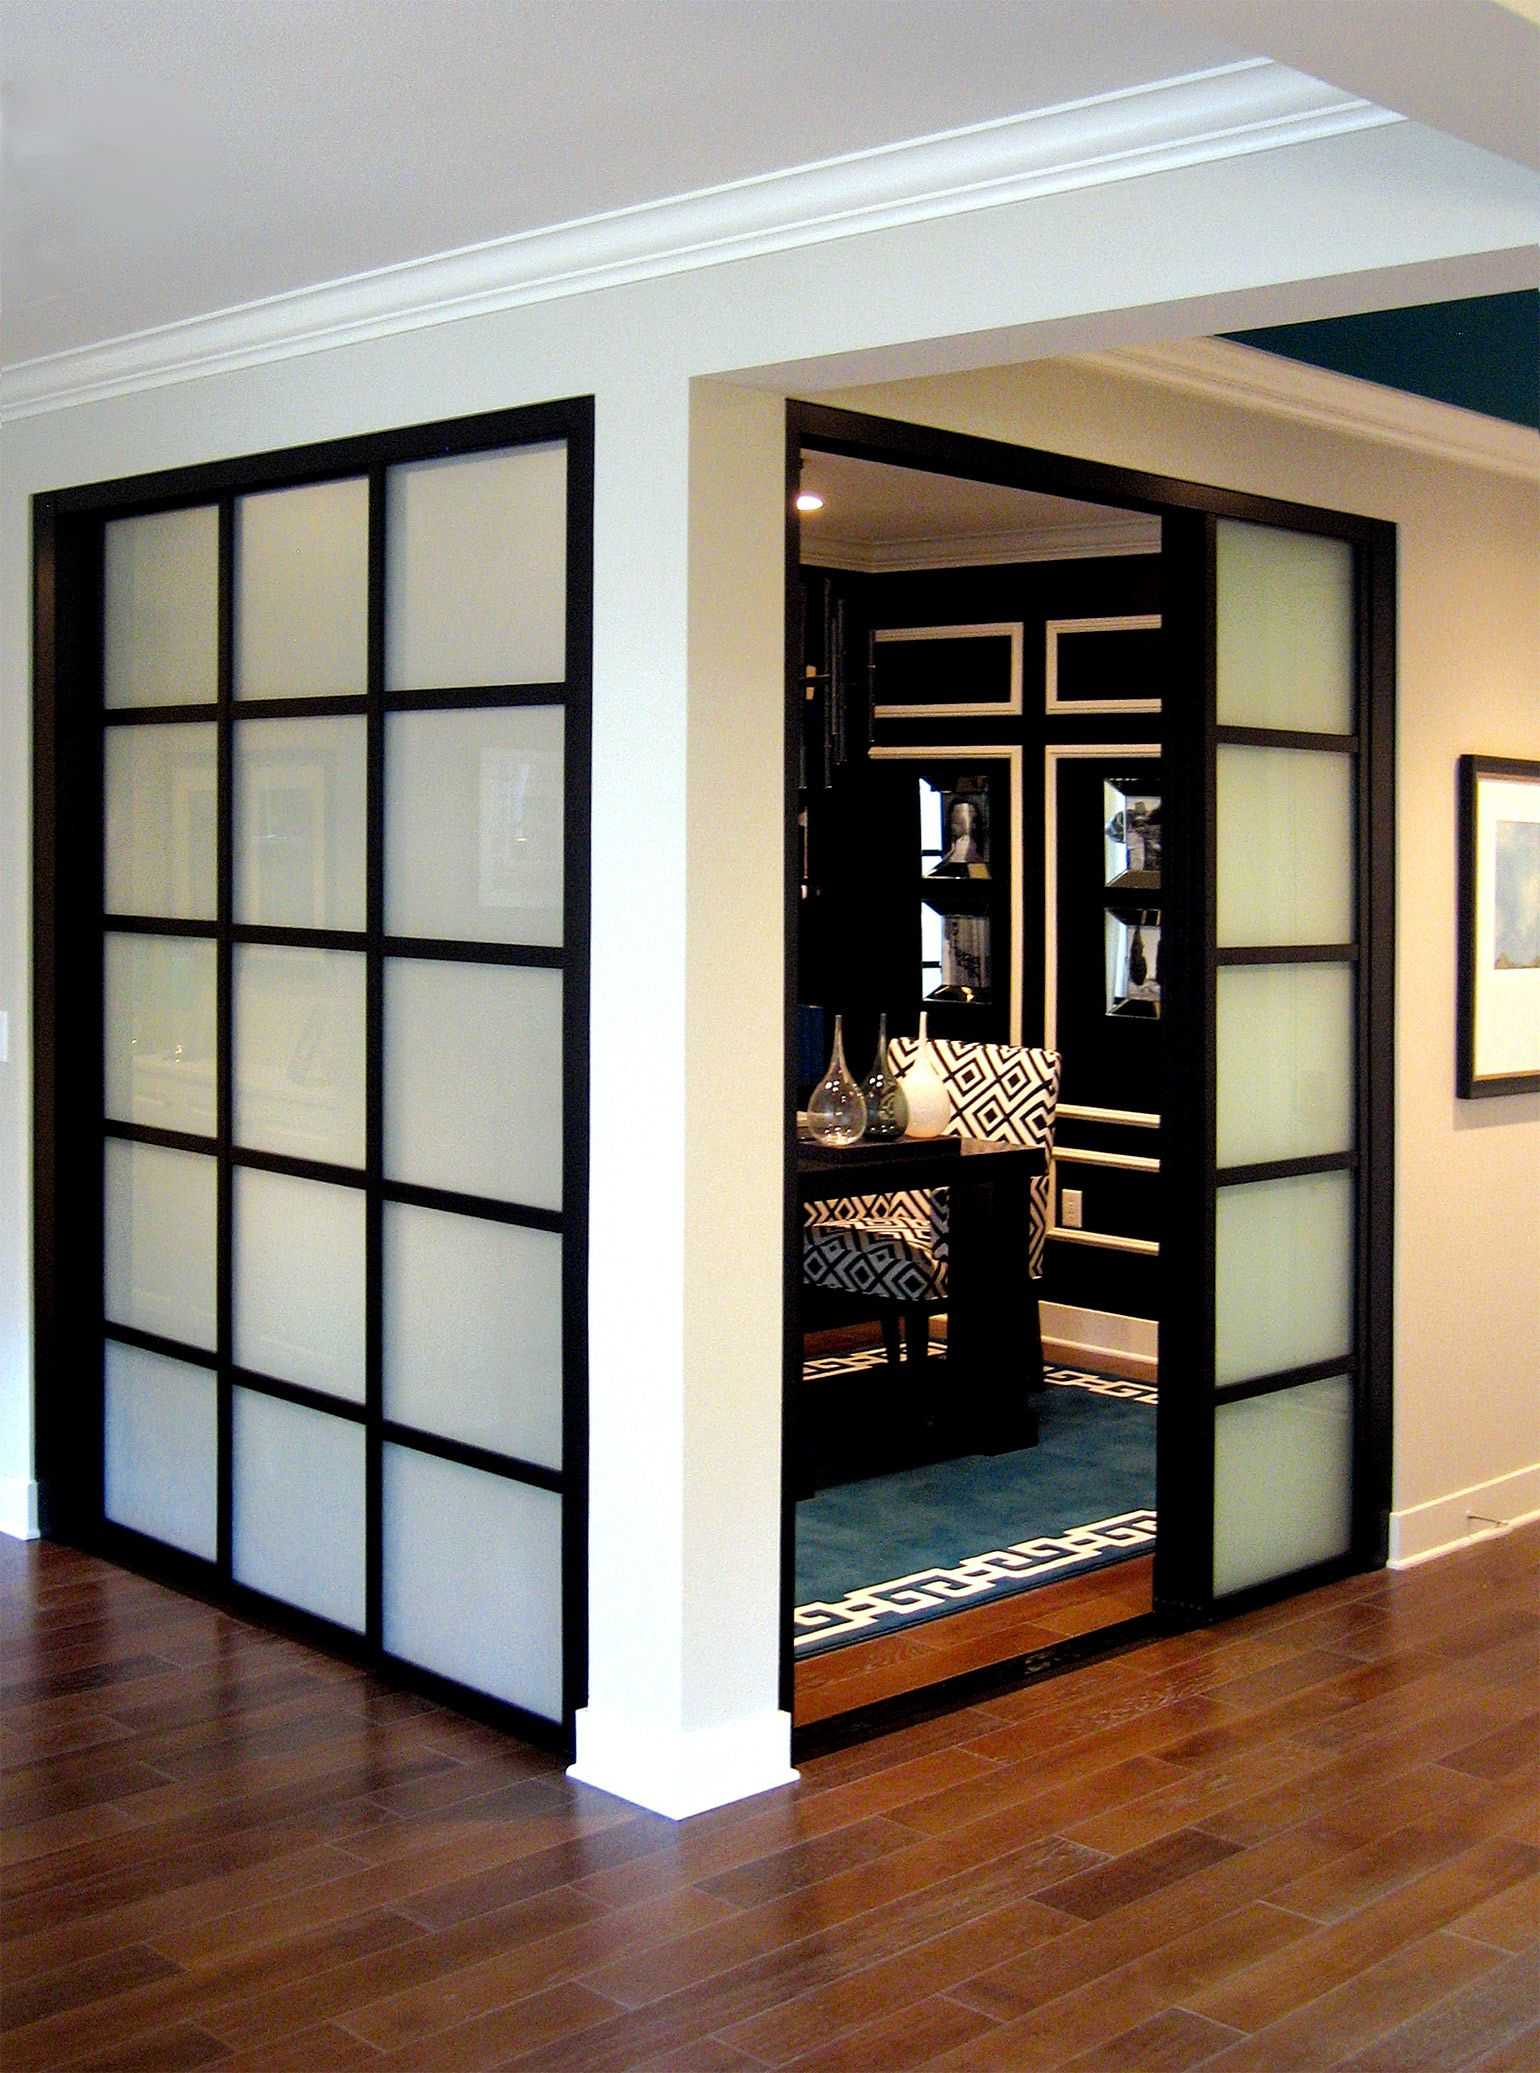 Wall Slide Doors With Laminated Glass & Black Frame Inspirational